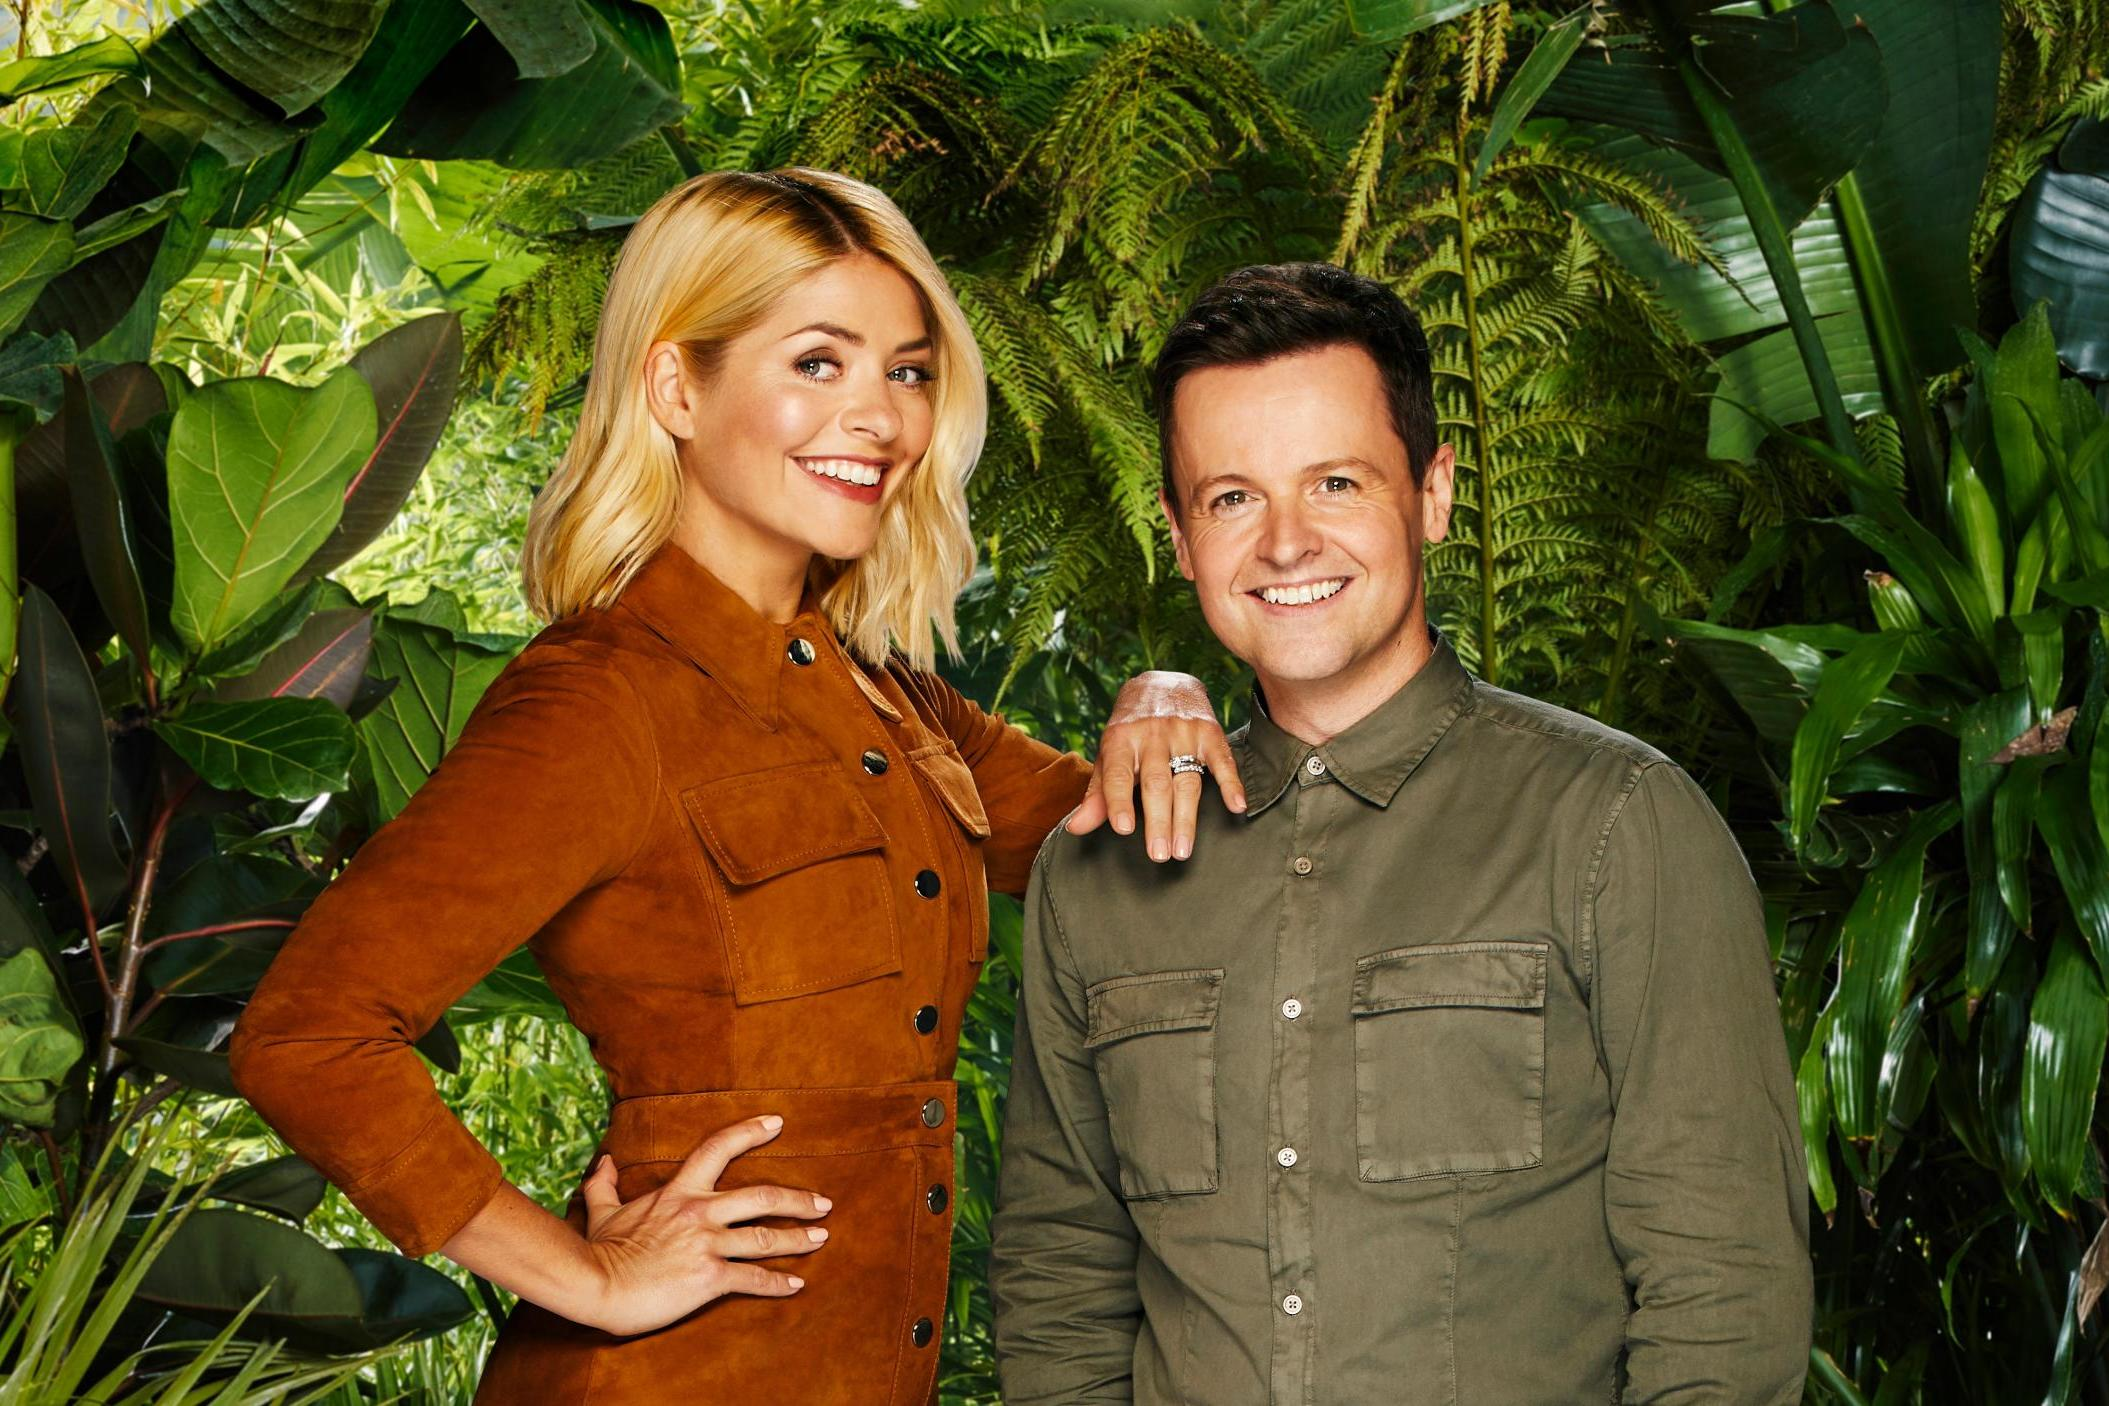 TV preview: 'I'm a Celebrity' should be a little different as Holly Willoughby replaces Ant McPartlin